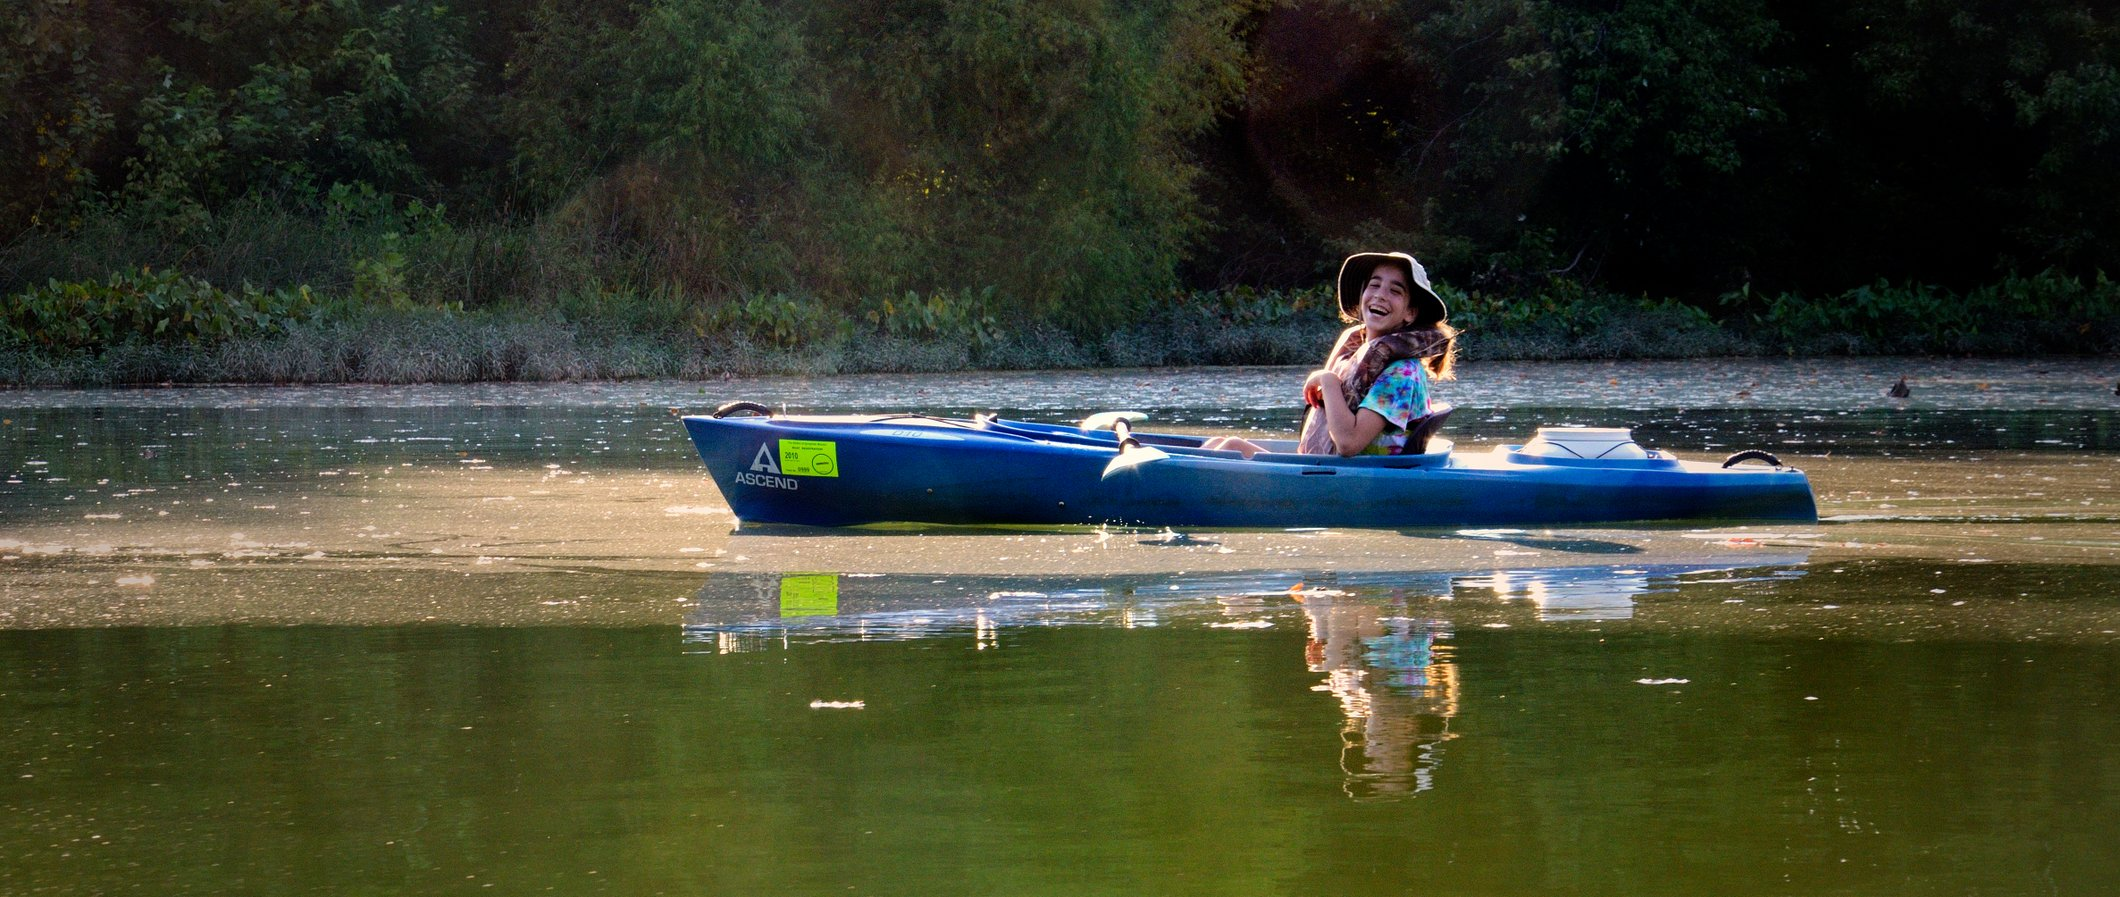 Lanie in an Ascend D10 Kayak on the Jame River, Springfield Missouri